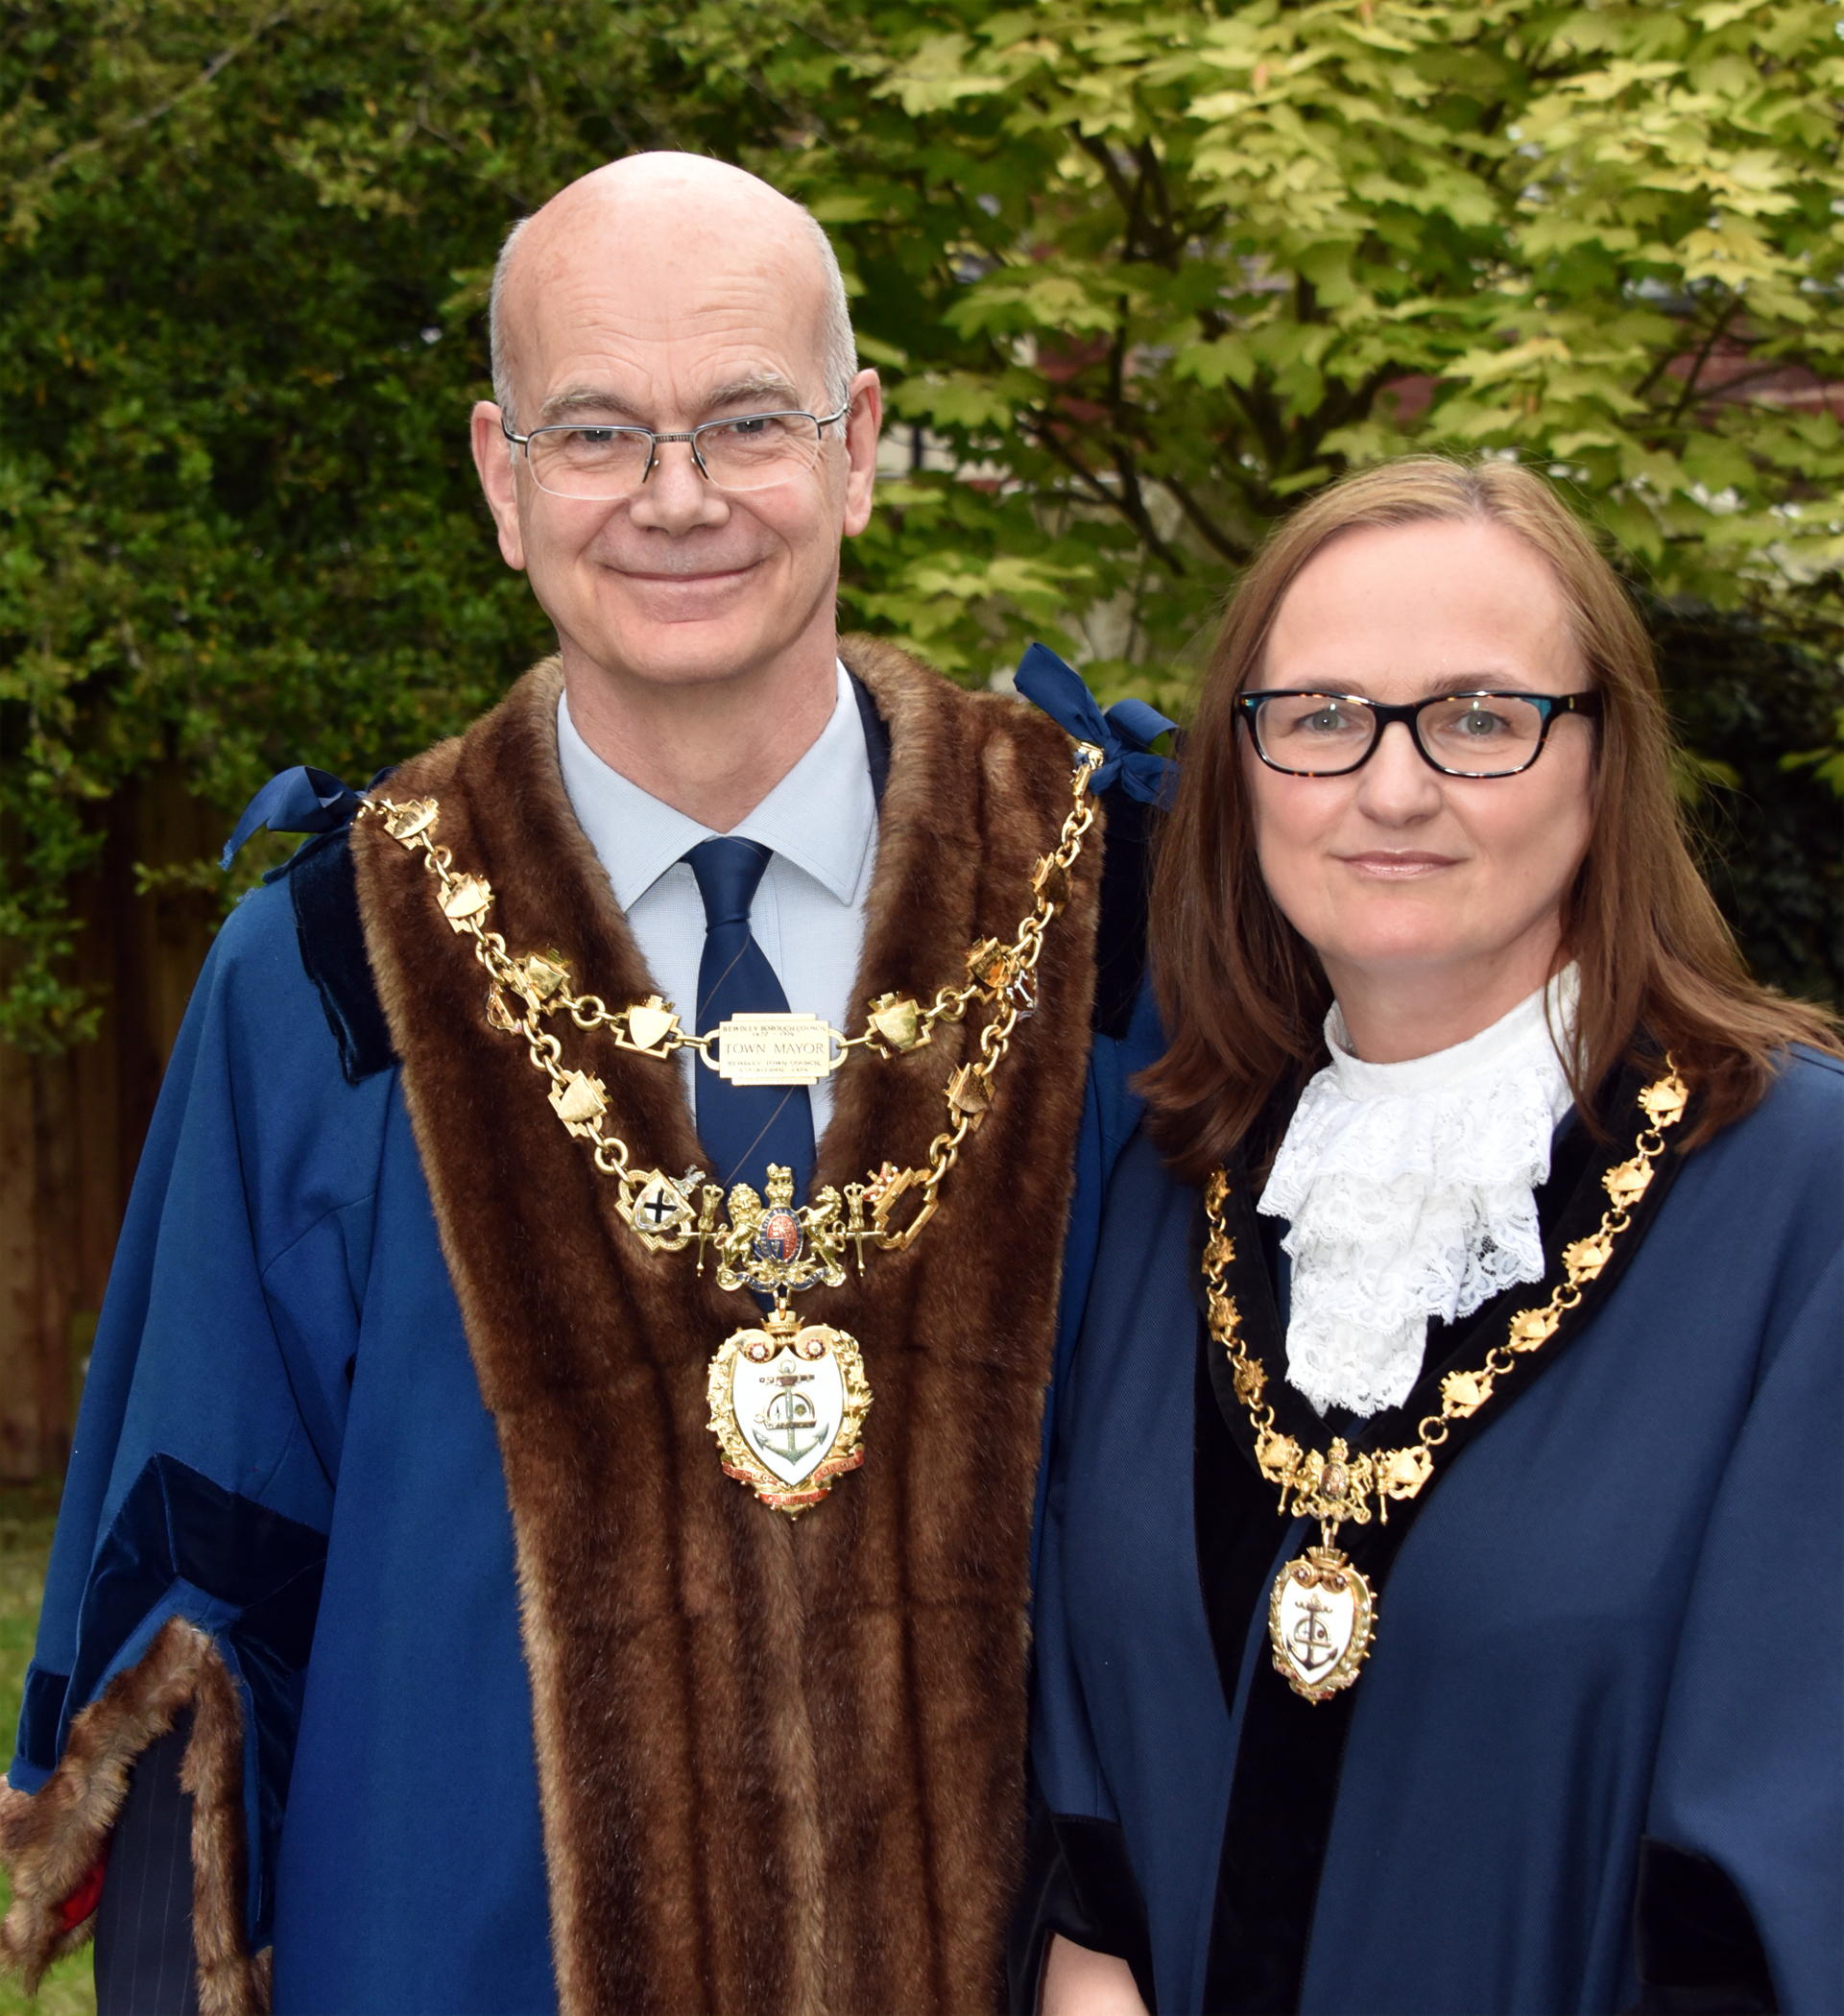 The newly elected Mayor of Bewdley Roger Coleman and his wife Anna Coleman